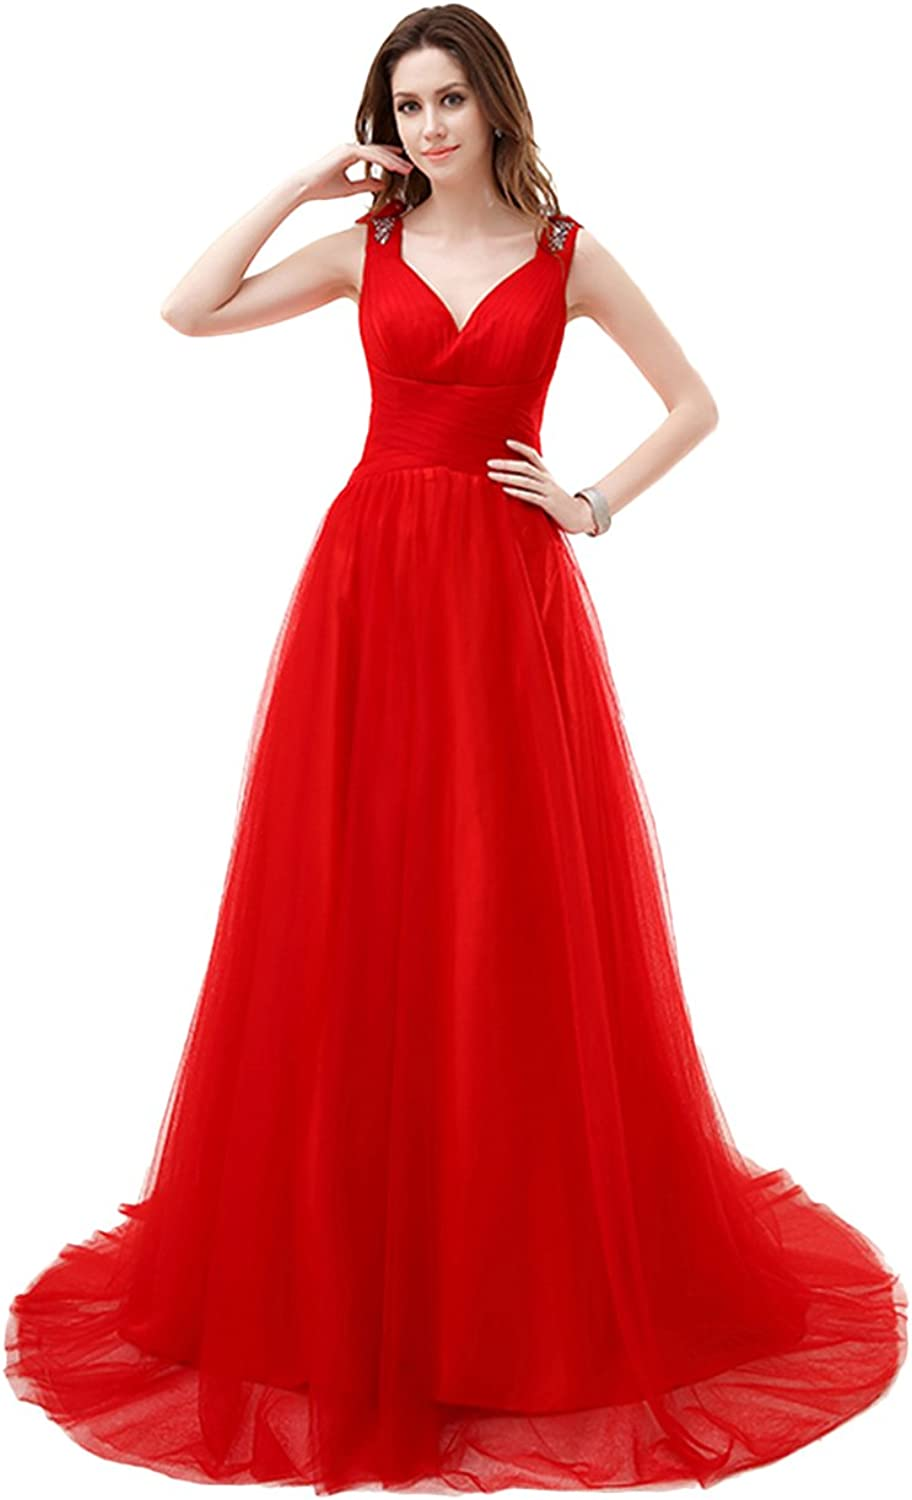 BessWedding Women's Long V Neck Beads Sequins Prom Evening Wedding Gowns Dress